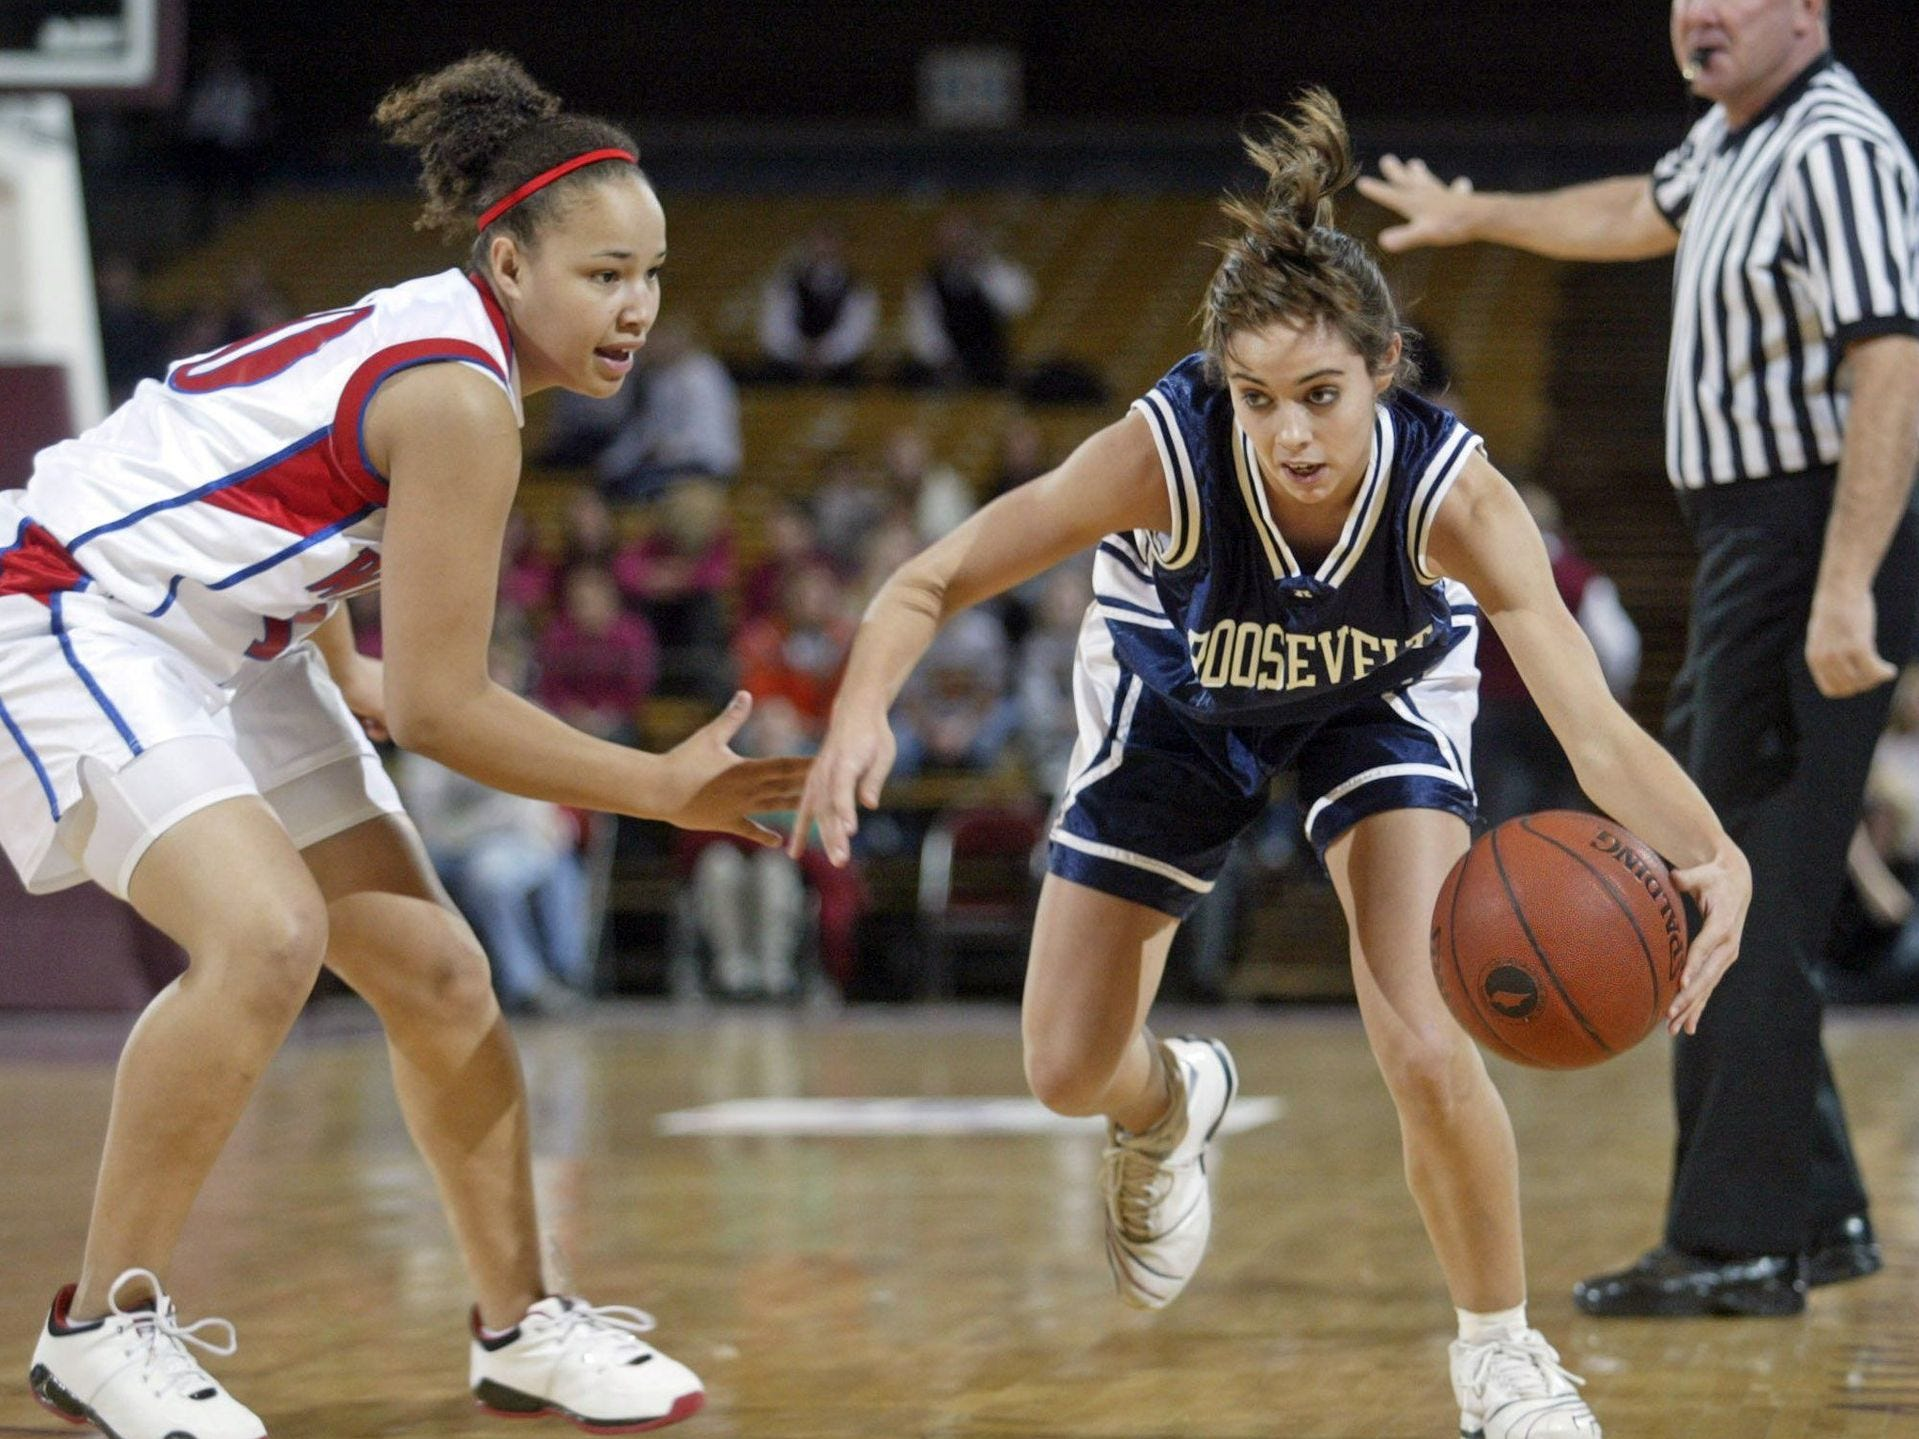 2005: Rider Christina Brown drives against Warrior Micha Mims at the state girls' basketball tournament. Register file photo